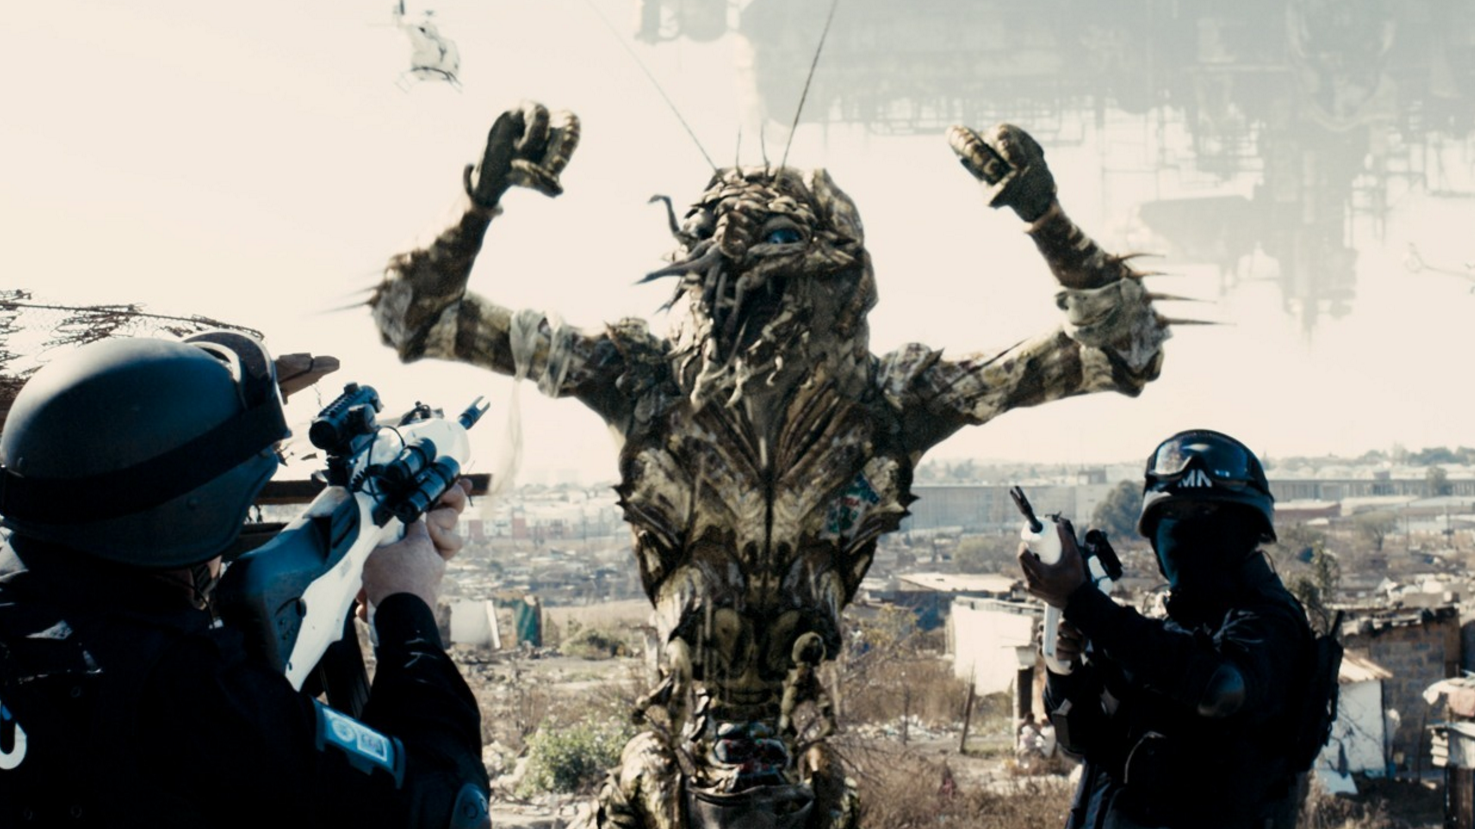 According To Neill Blomkamp, There Could Be A Sequel To 'District 9'